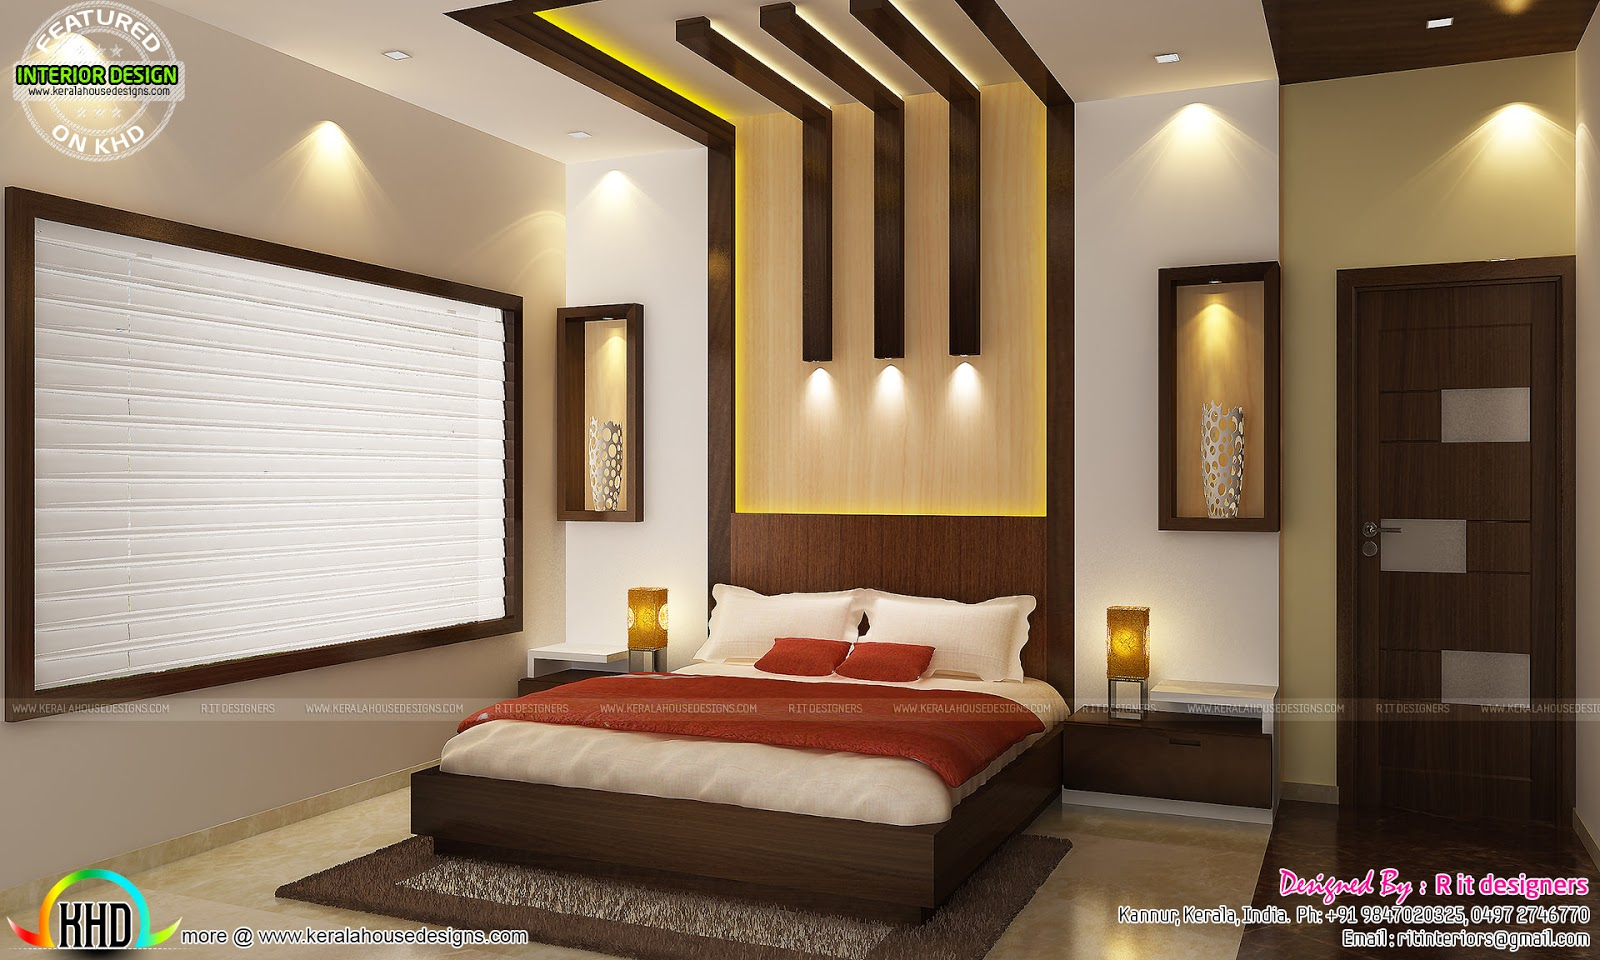 Kitchen living bedroom dining interior decor kerala for Interior designs for bed rooms